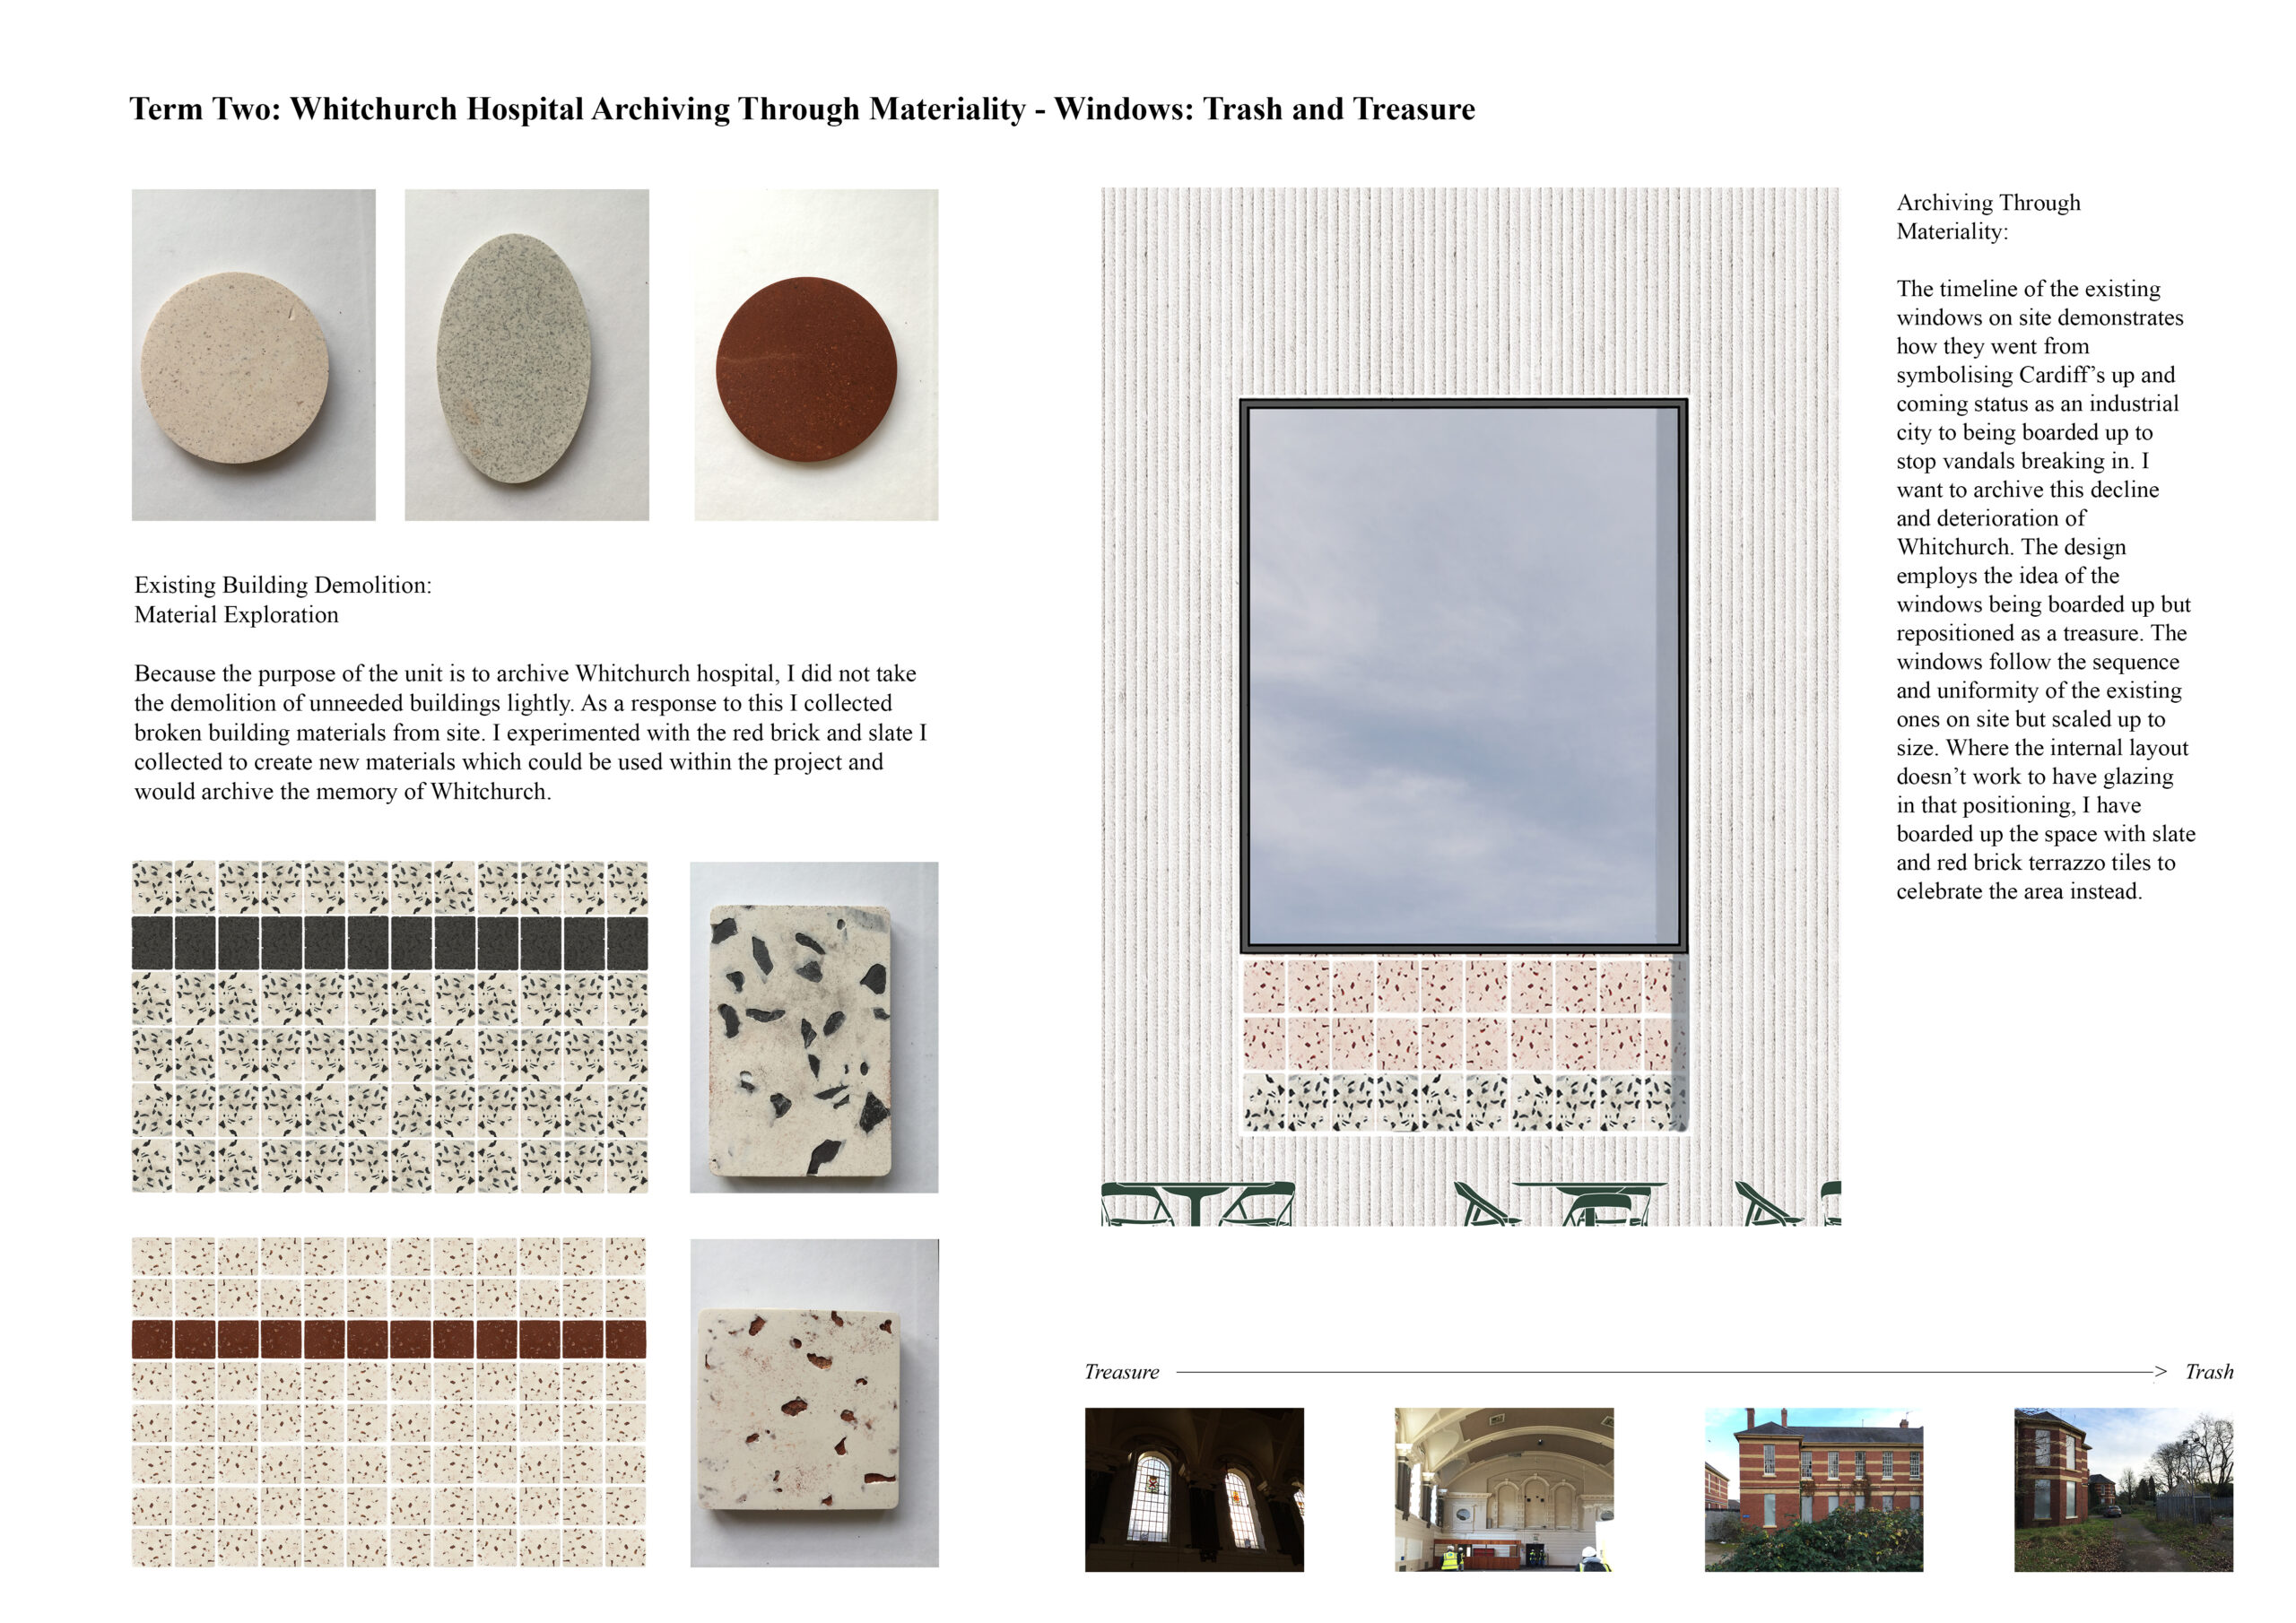 Portfolio Page exploring materiality, with photographs of new materials made from existing waste materials found at Whitchurch Hospital. A elevation of the windows shows boarded up windows being re-positioned as a treasure.